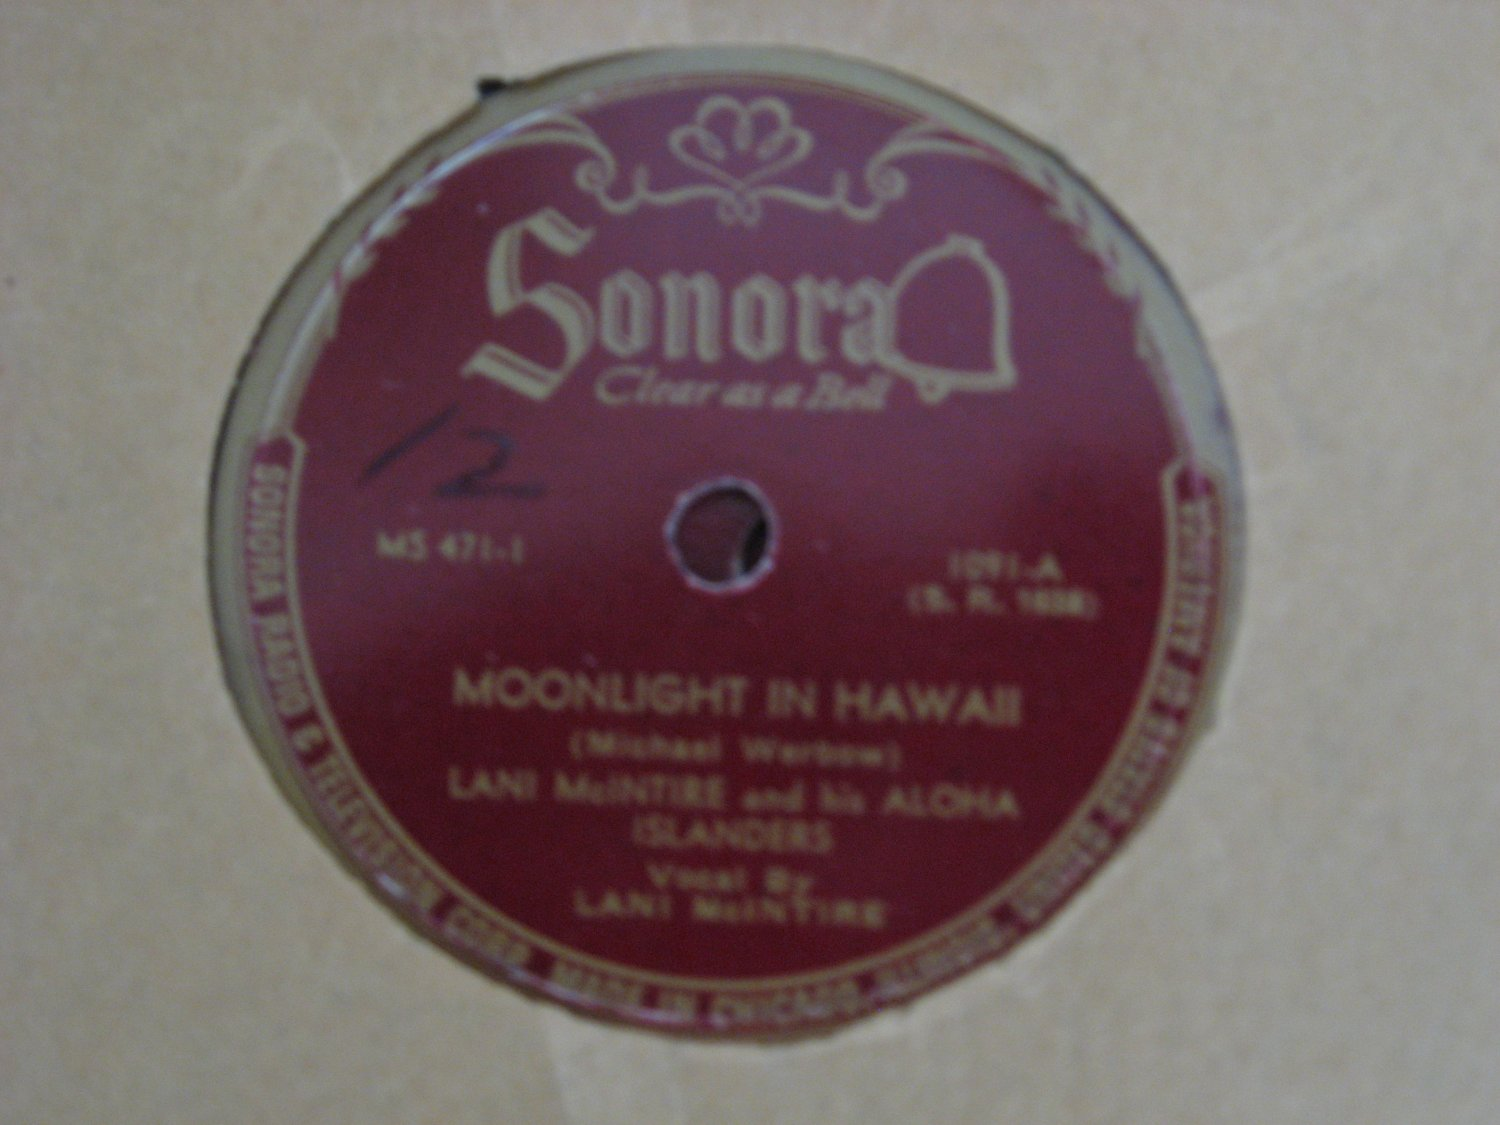 Lani McIntire - Moonlight In Hawaii/Drowsy Waters - 1945  (Vinyl Records)